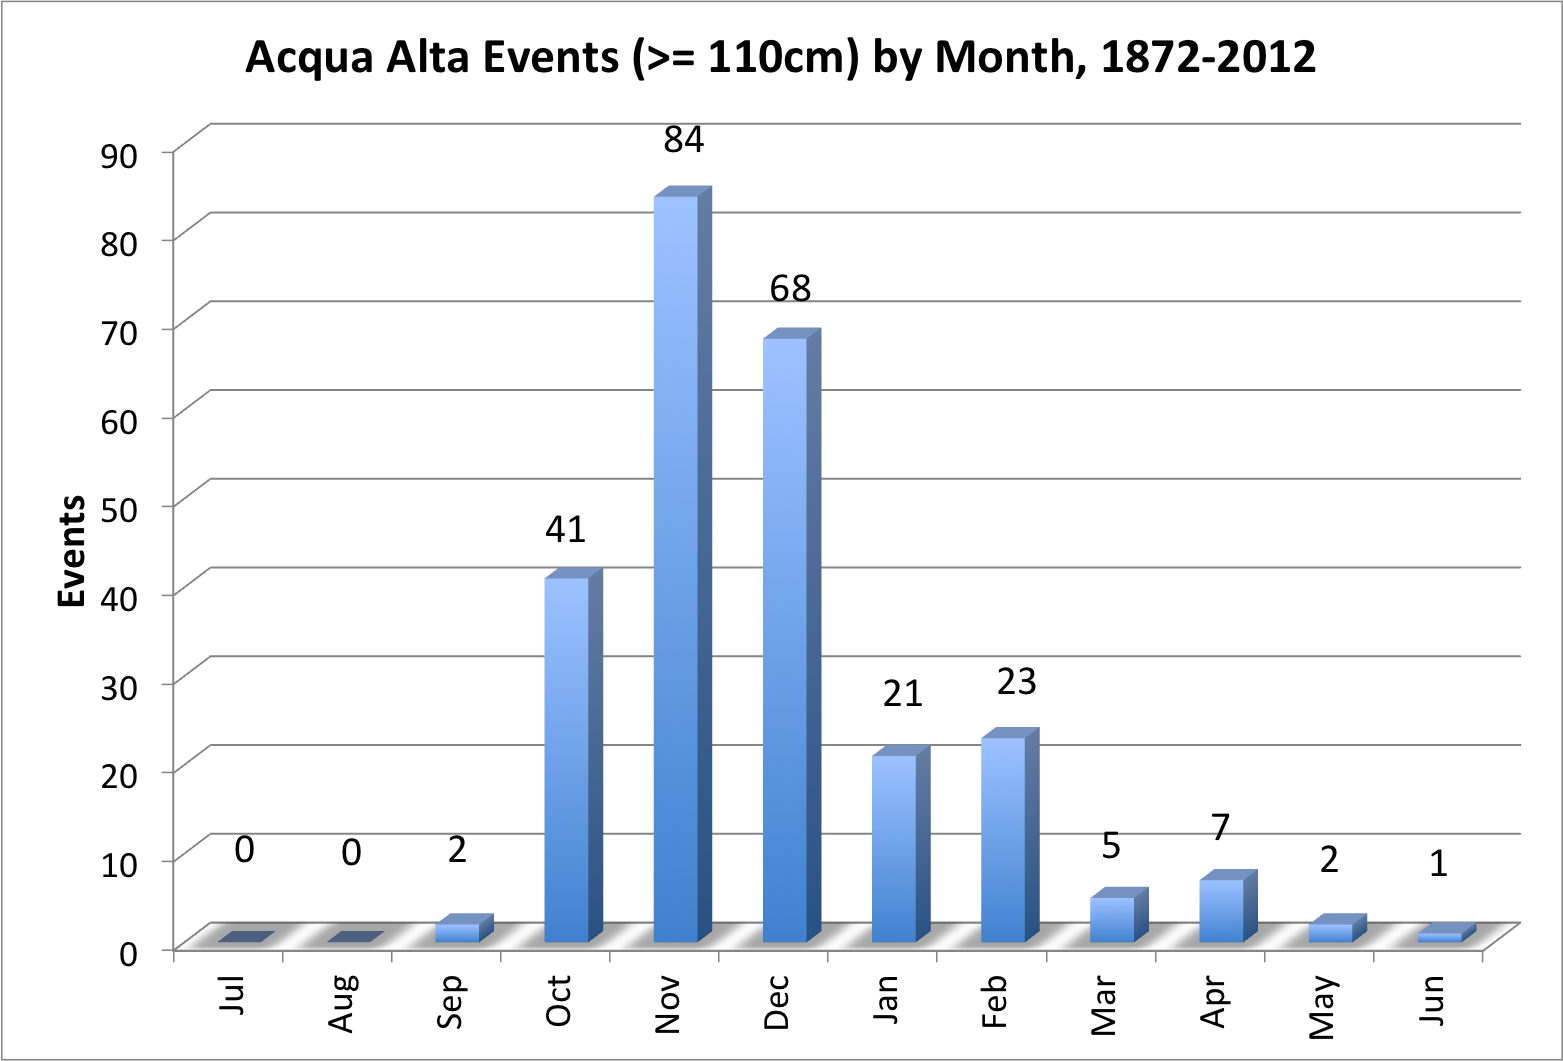 Venice in november acqua alta risk suitcasejournal graph created using data from city of venice nvjuhfo Choice Image